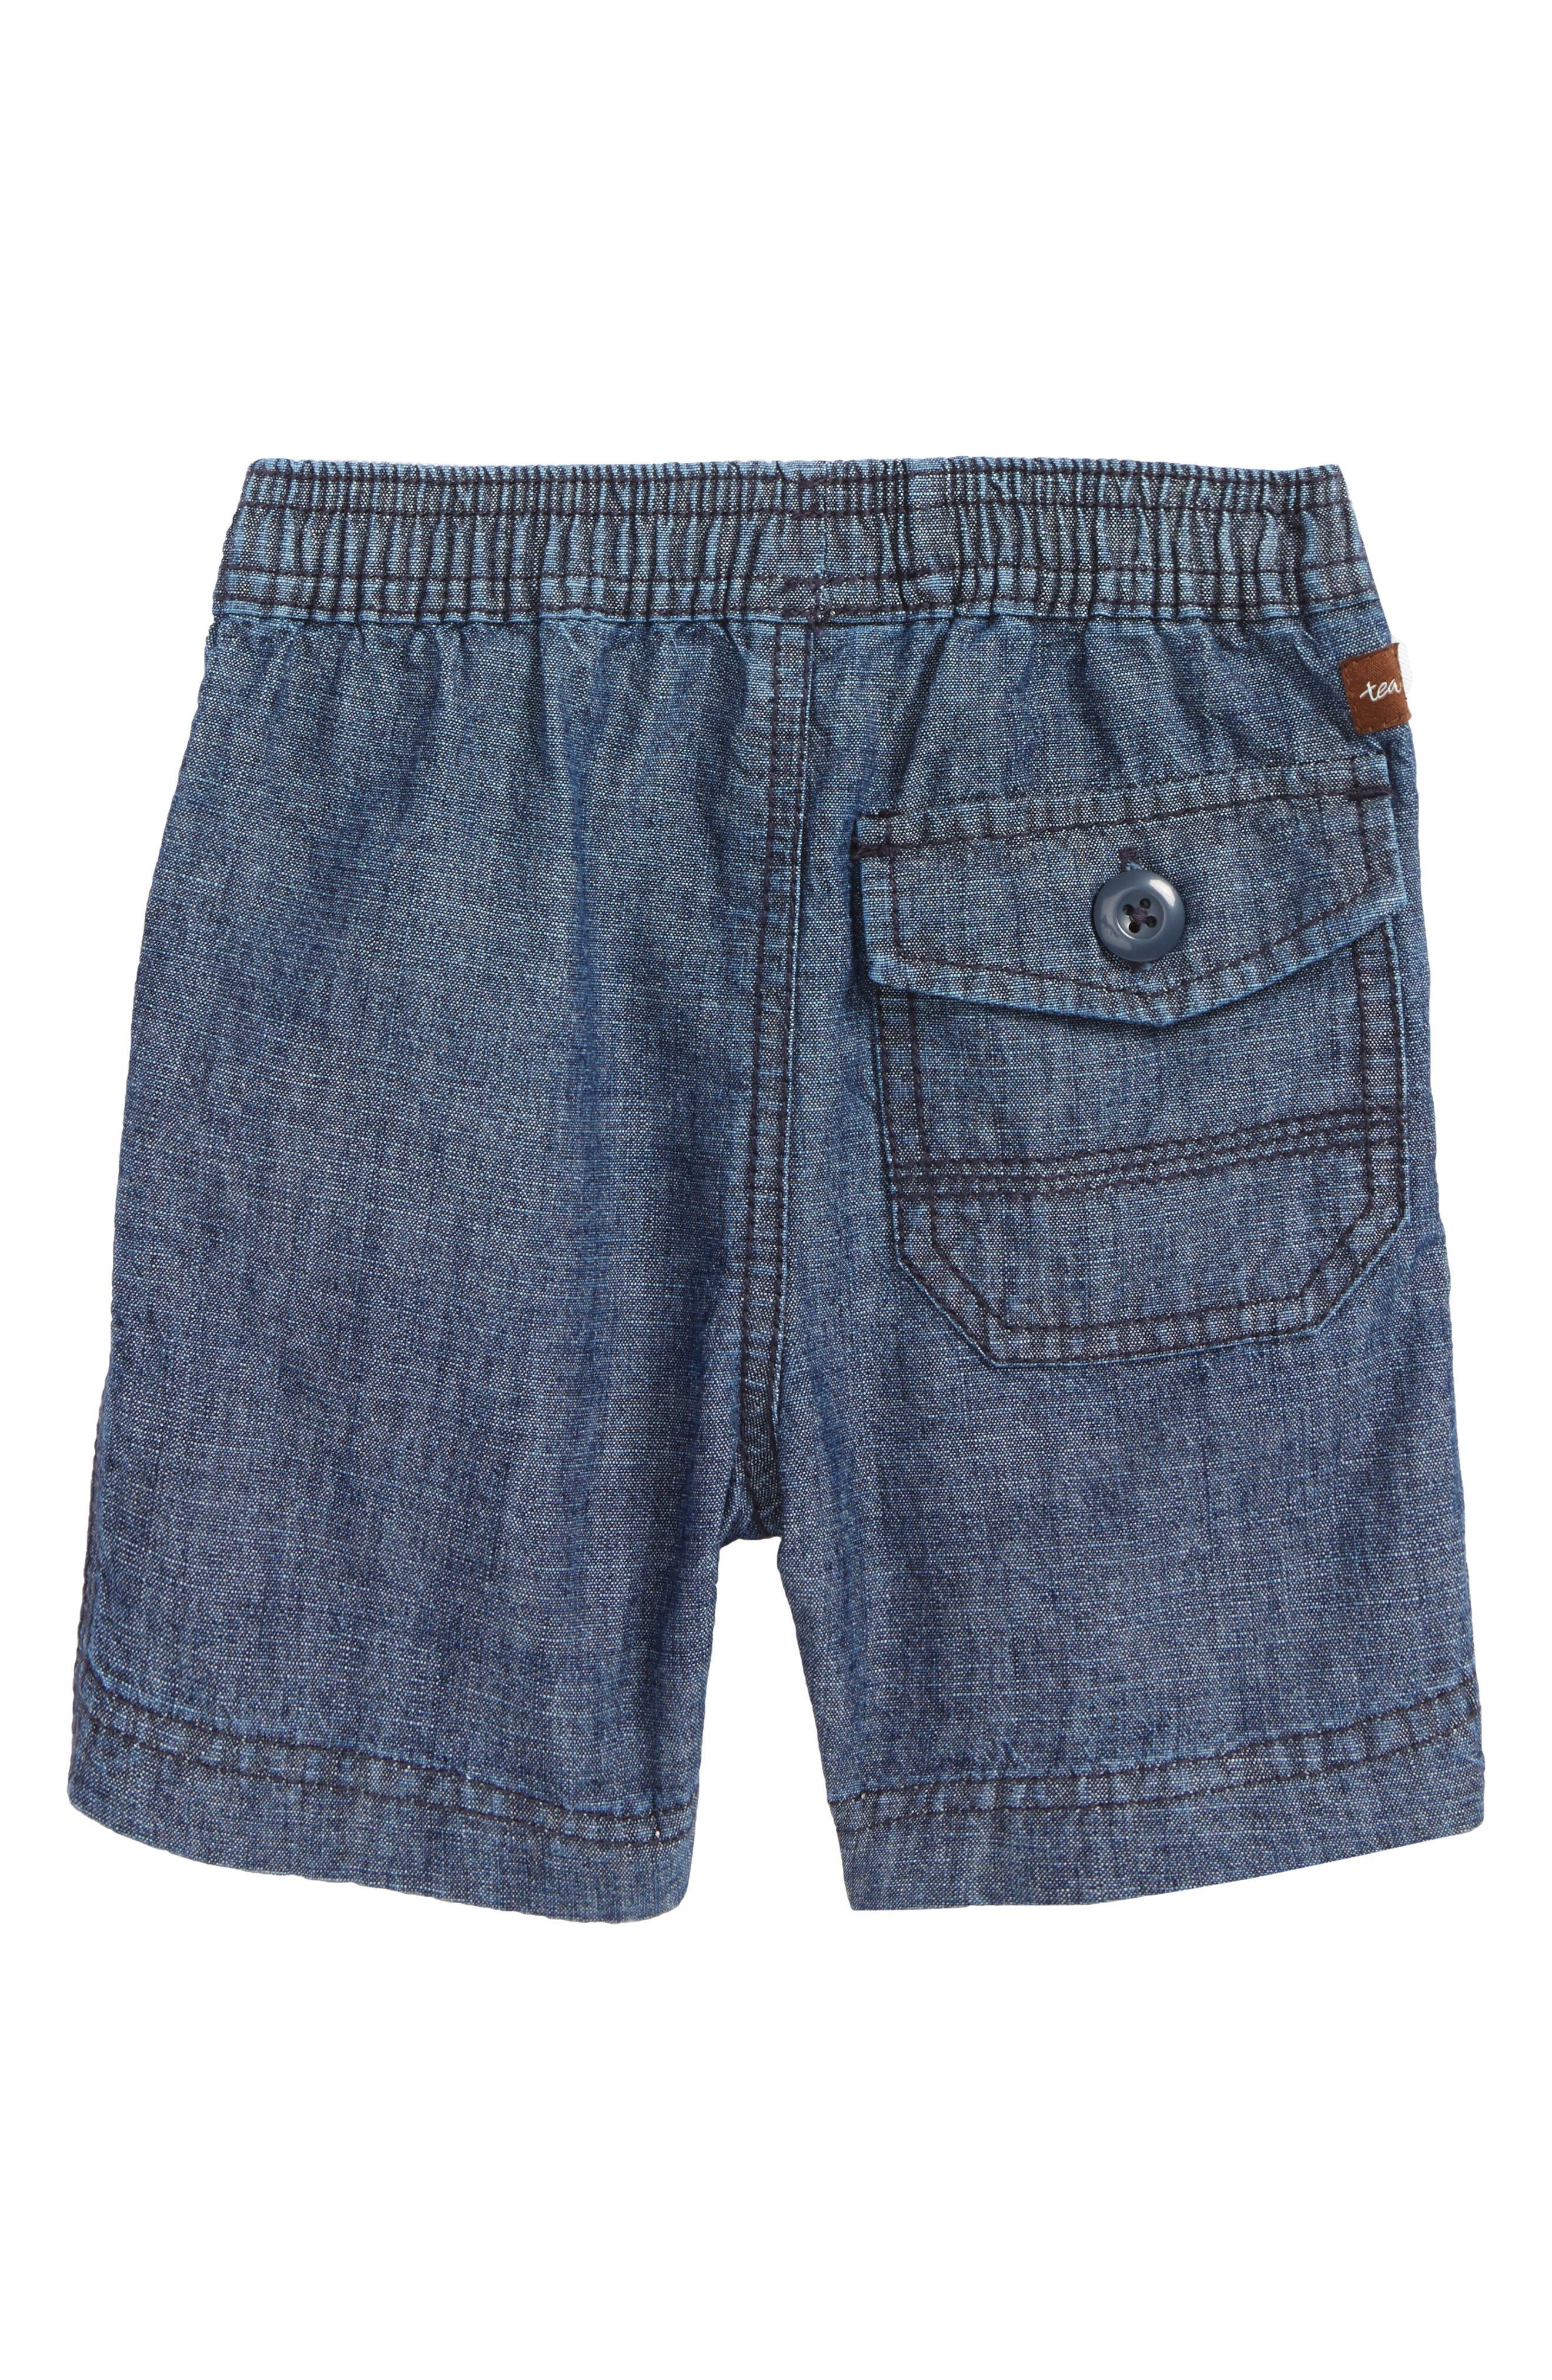 Easy Does It Chambray Shorts,                             Alternate thumbnail 2, color,                             Blue Chambray